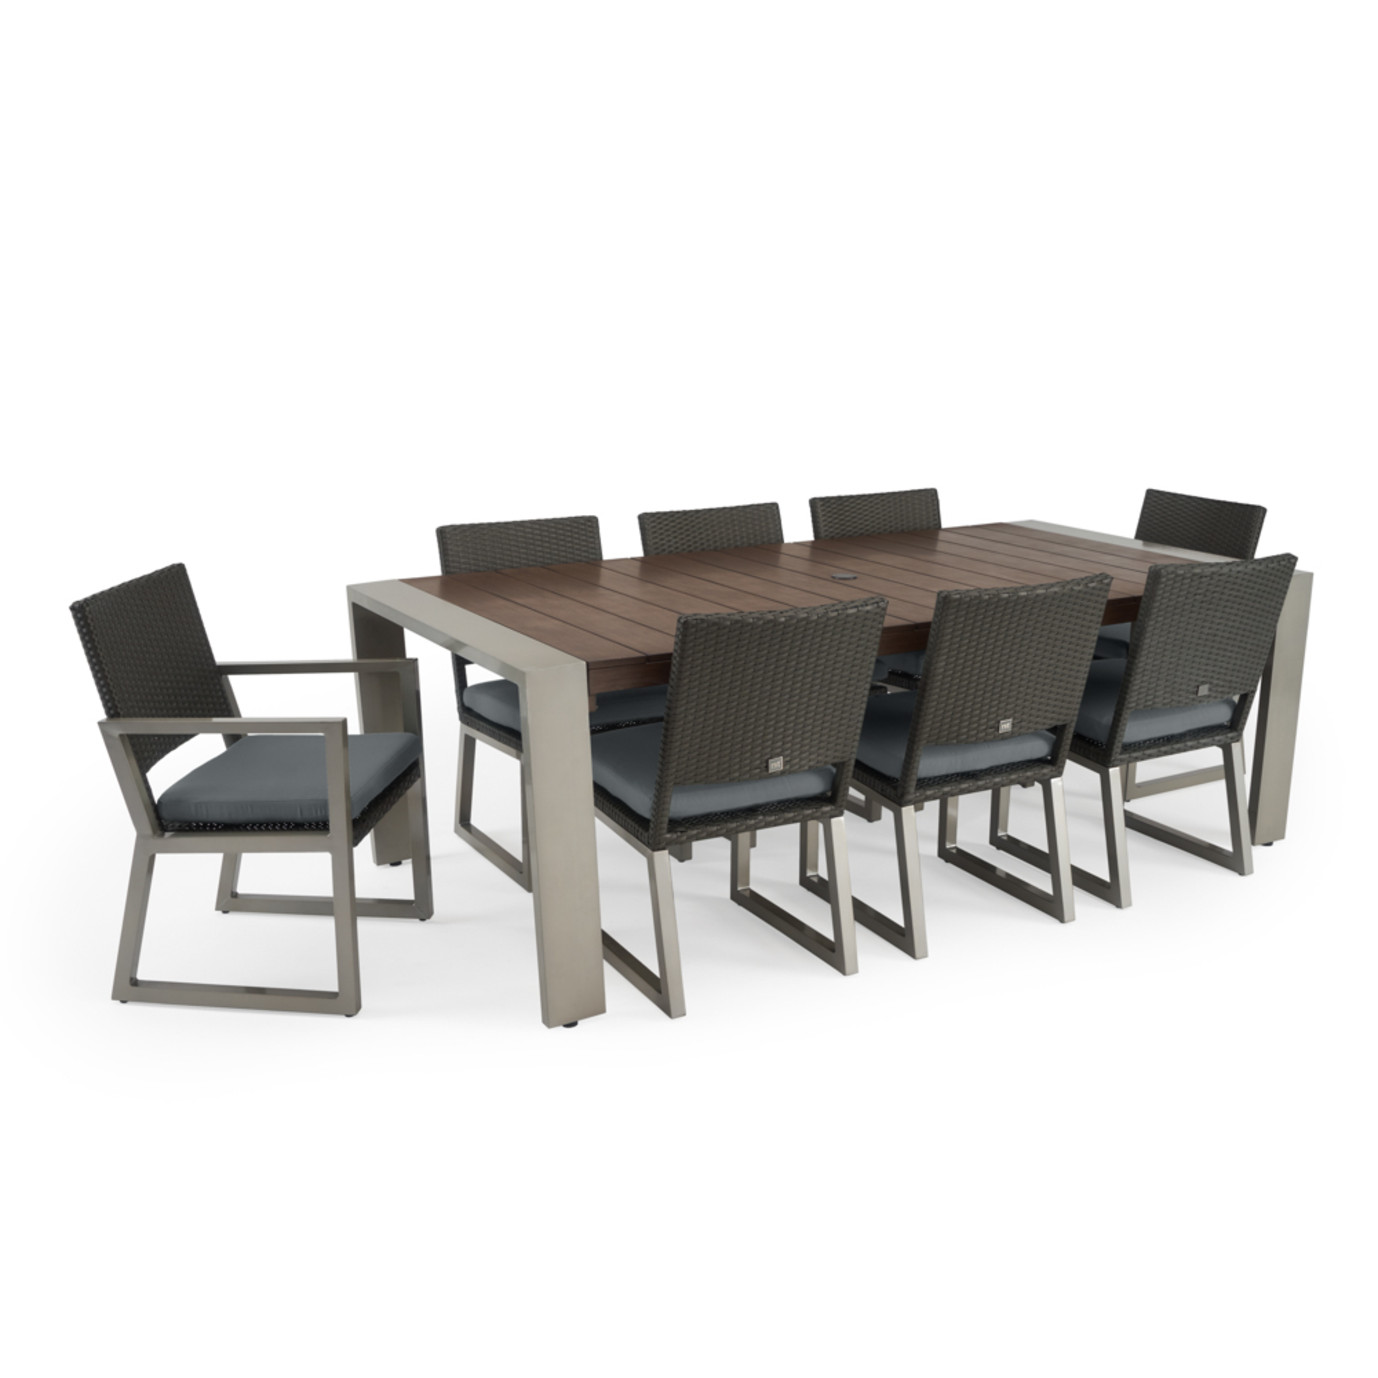 Milo™ Espresso 9 Piece Dining Set - Charcoal Gray